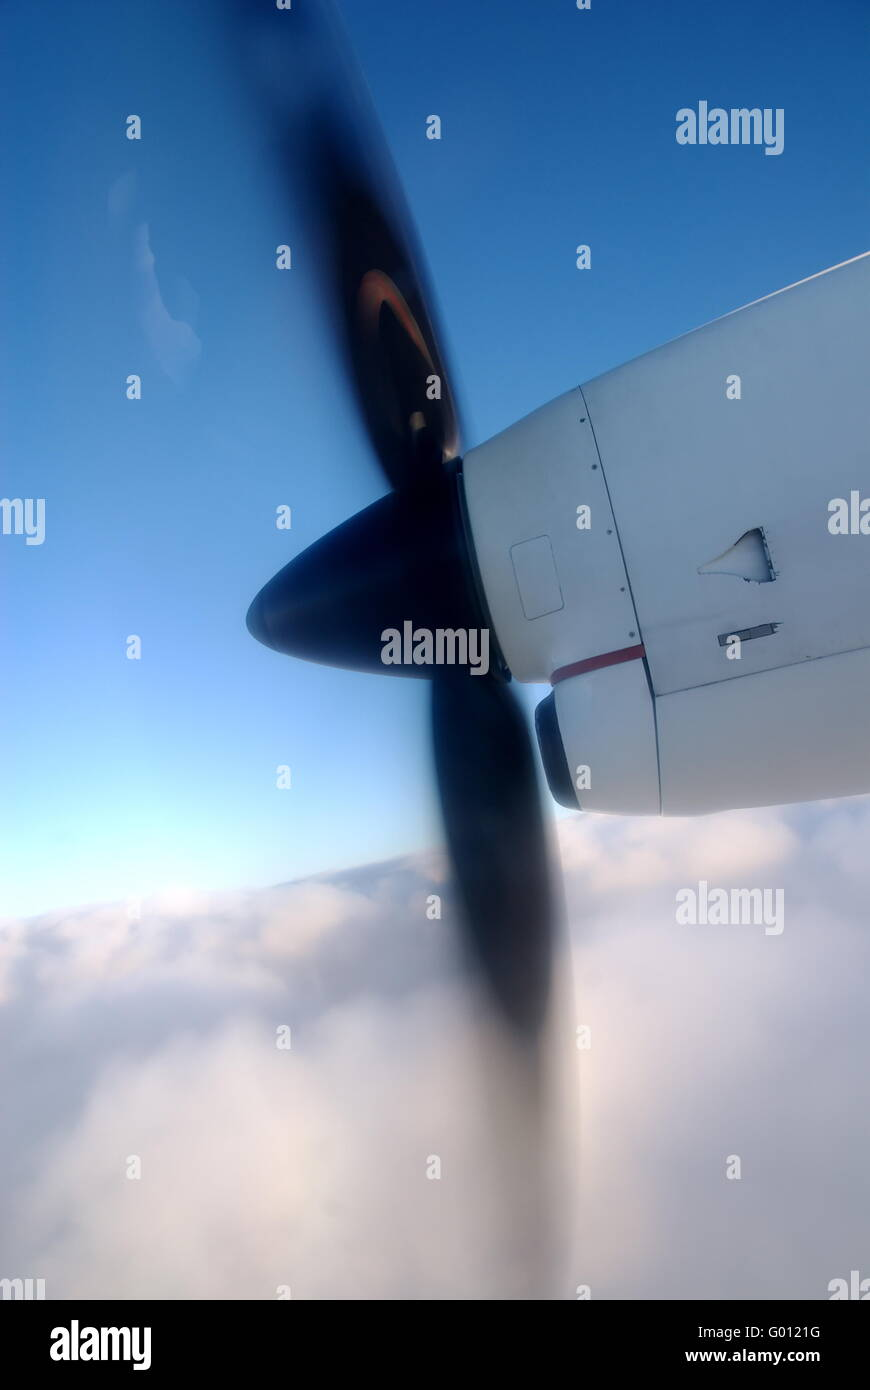 Turboprop Aircraft in flight - Stock Image